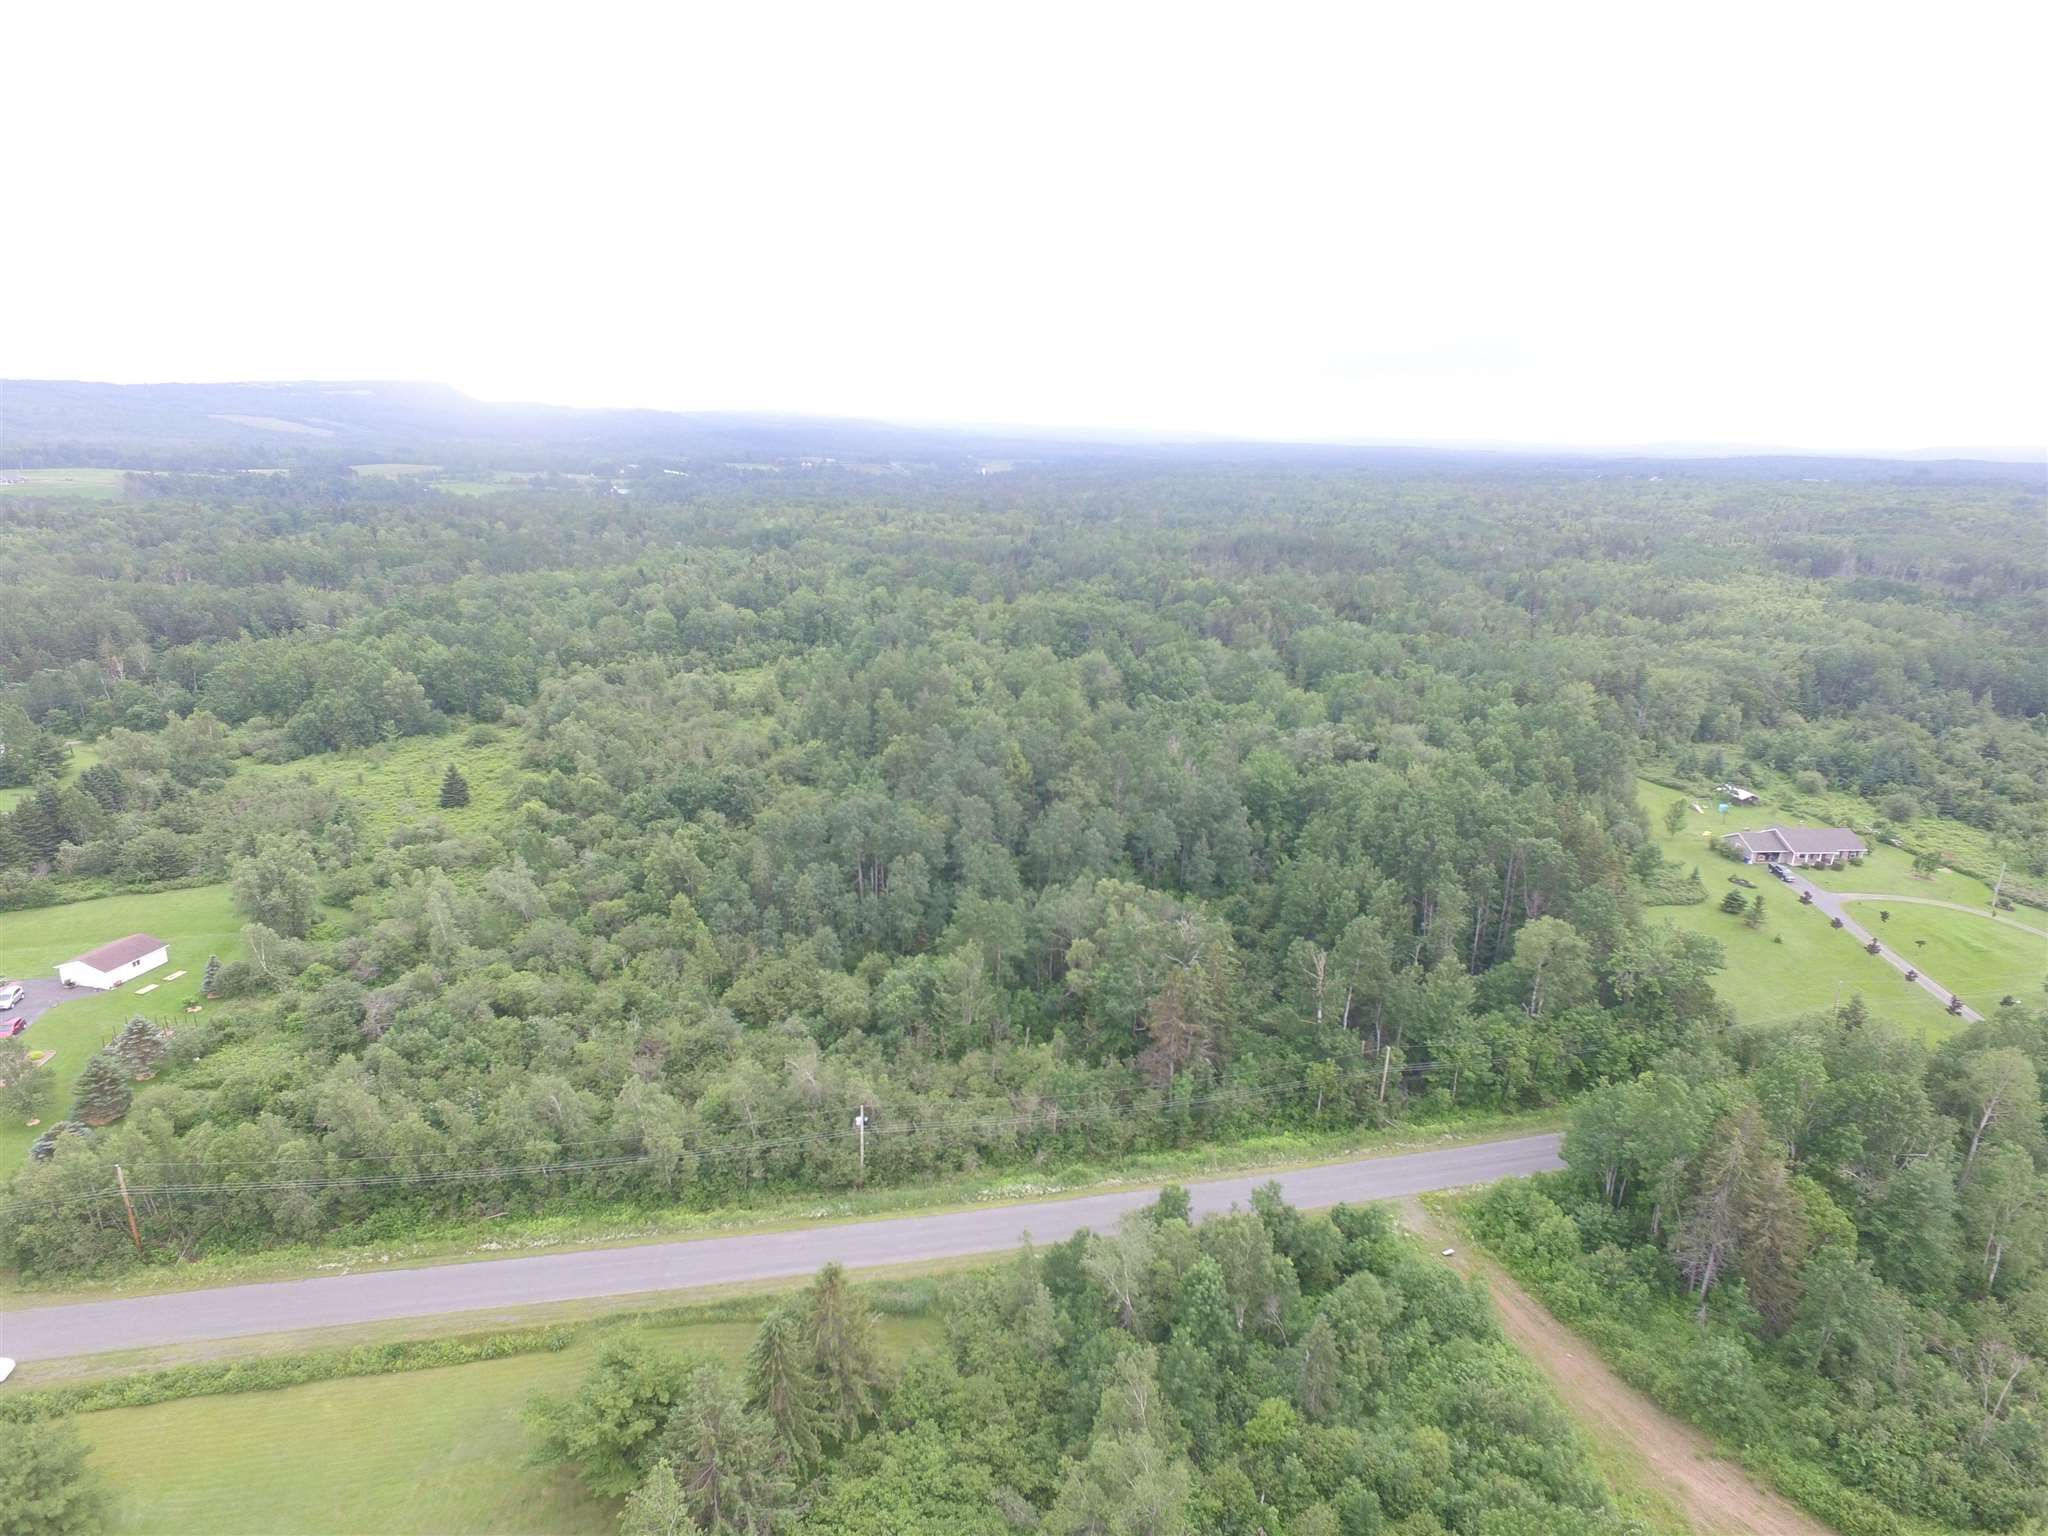 Main Photo: Lot 14B Quarry Brook Drive in Durham: 108-Rural Pictou County Vacant Land for sale (Northern Region)  : MLS®# 202117813